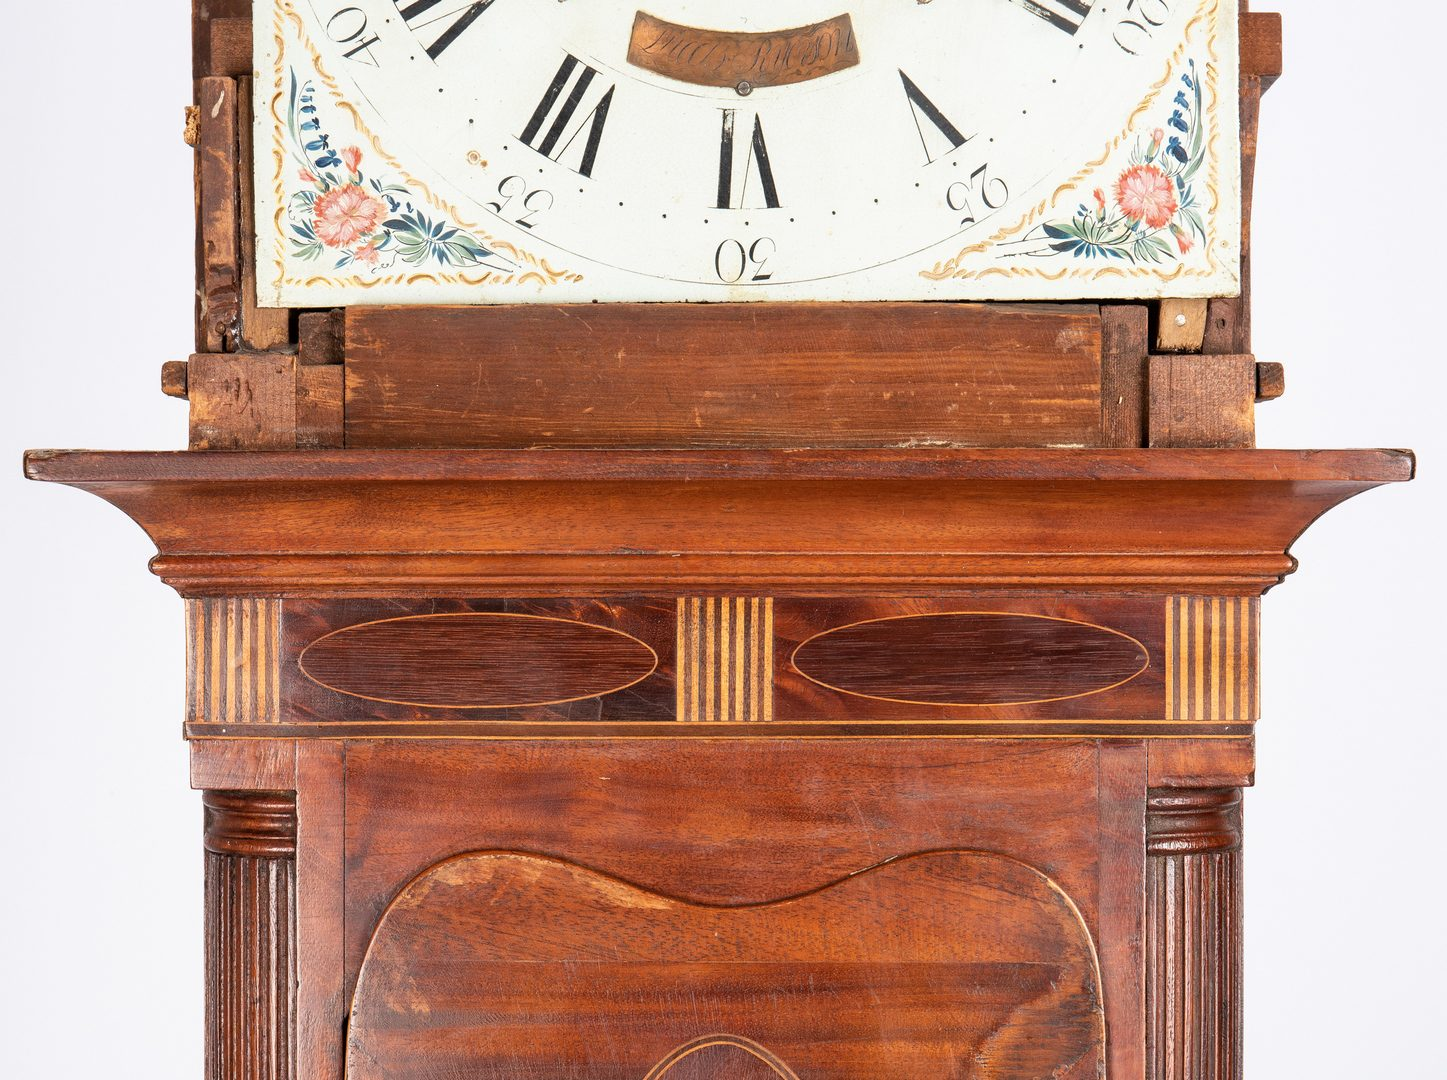 Lot 119: American Federal Tall Case Clock, Lucas Ryerson